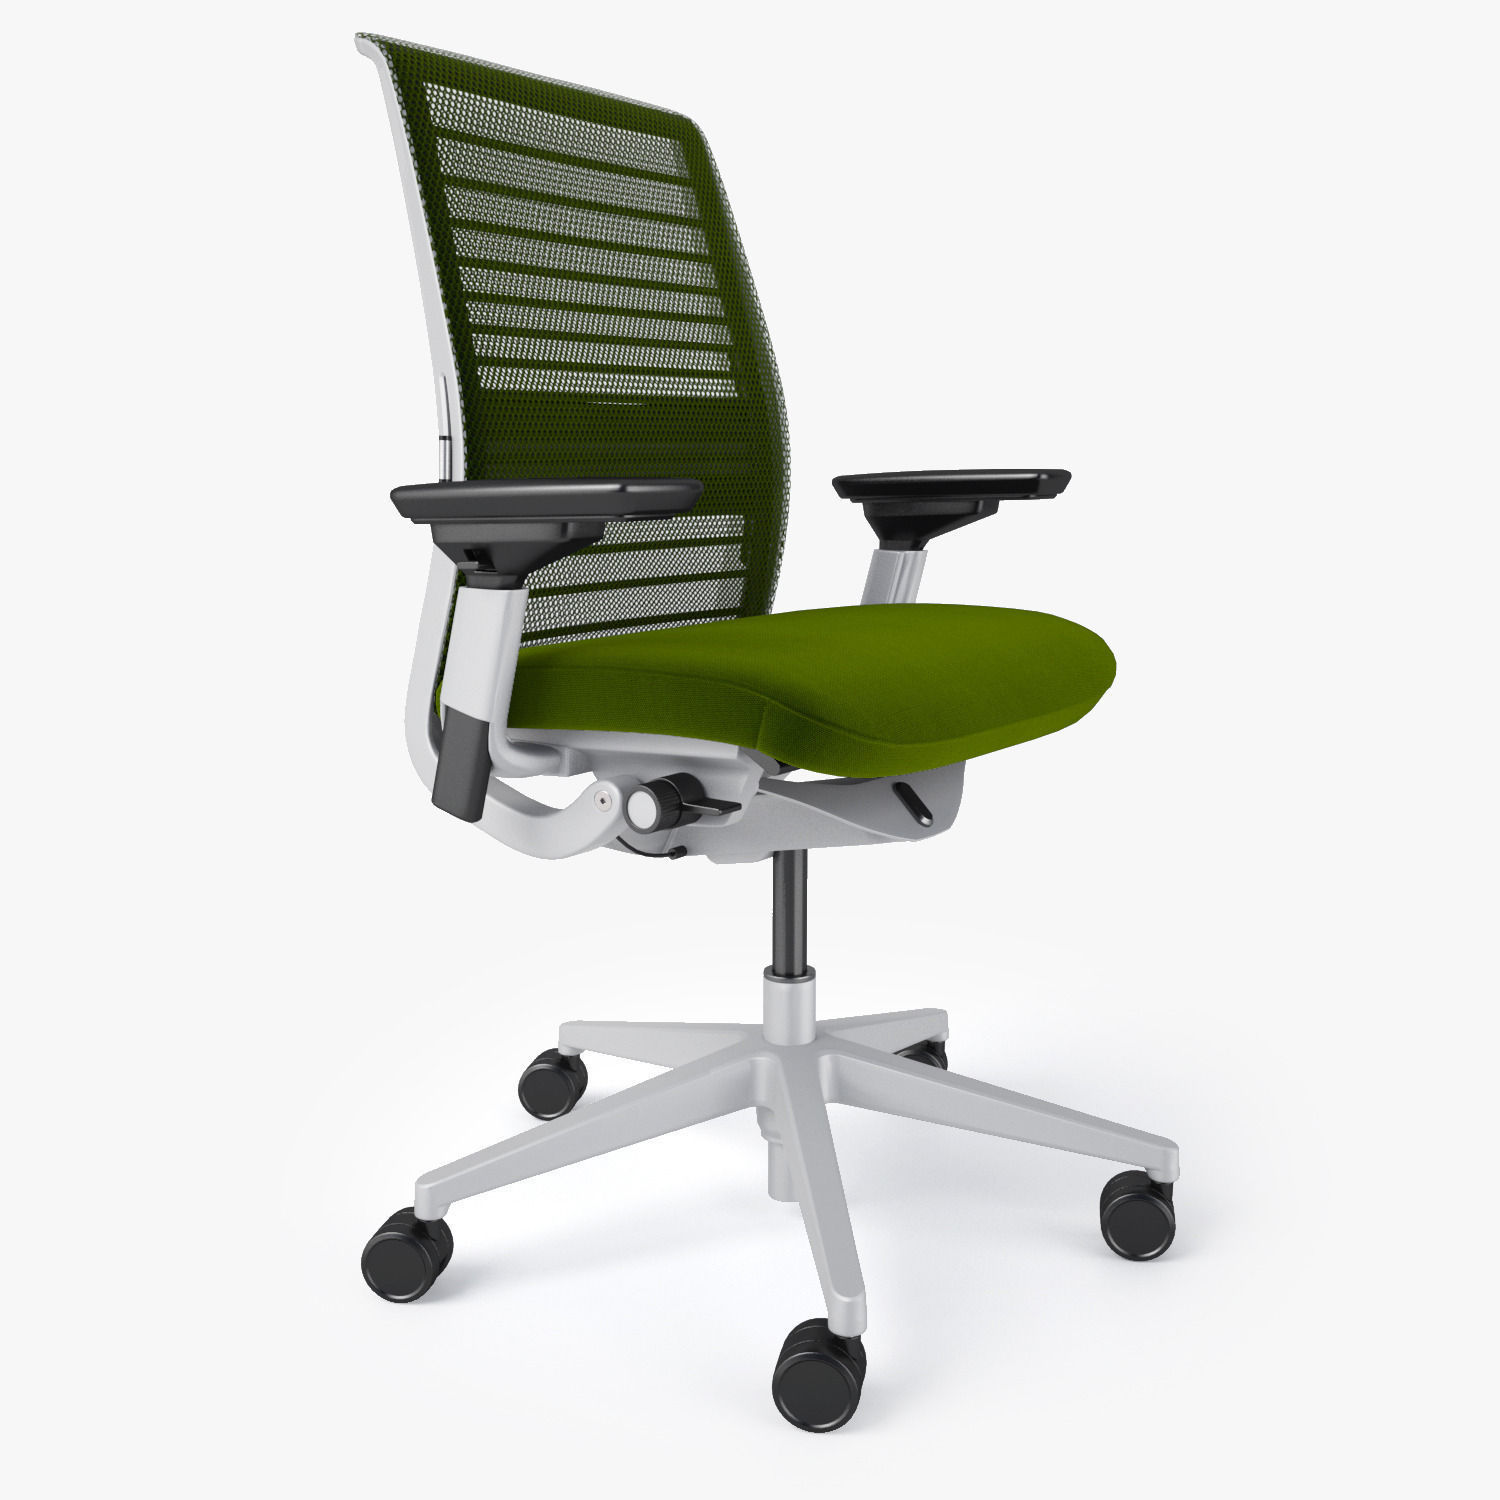 Steelcase think office chair 3d model max obj fbx mtl for Steelcase chairs